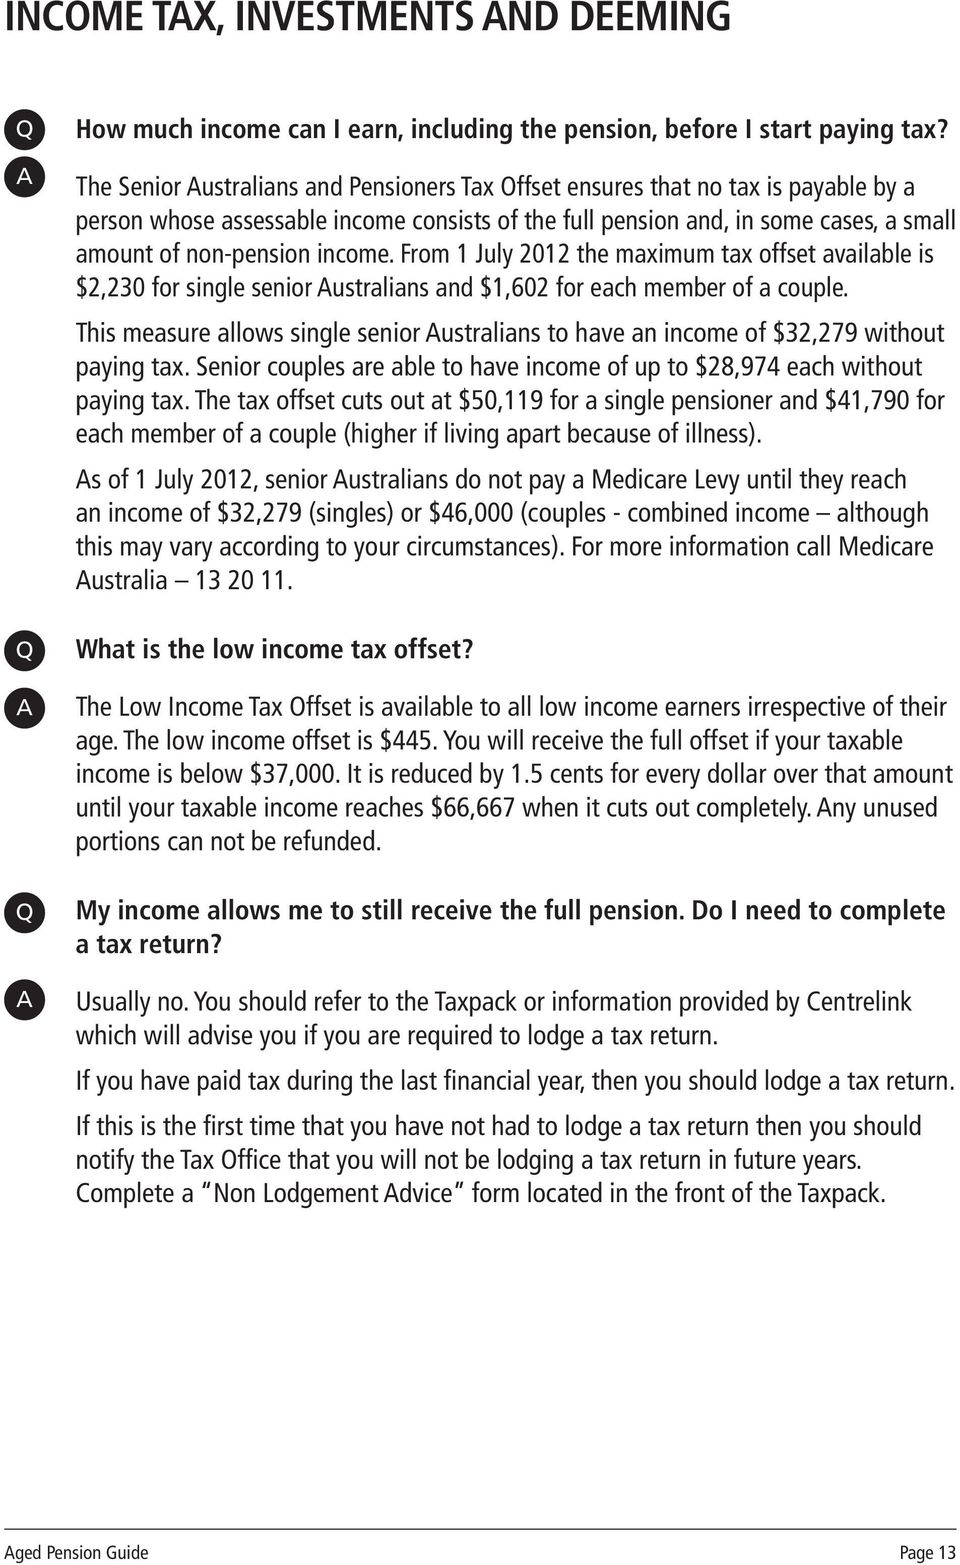 income. From 1 July 2012 the maximum tax offset available is $2,230 for single senior ustralians and $1,602 for each member of a couple.